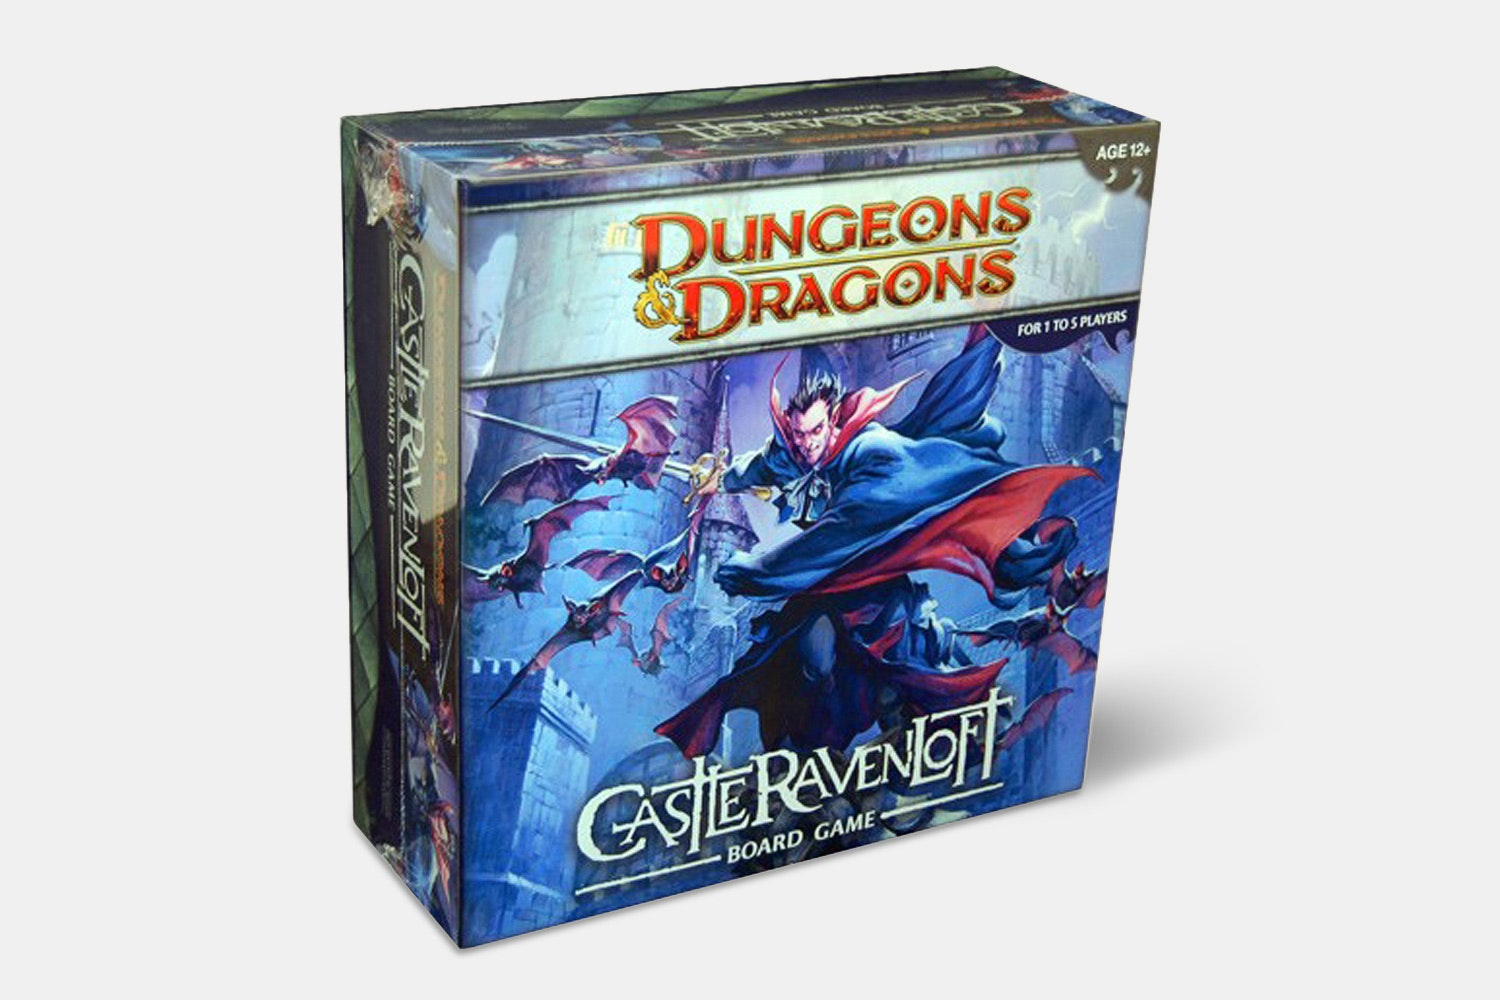 Dungeons & Dragons Board Game Bundle